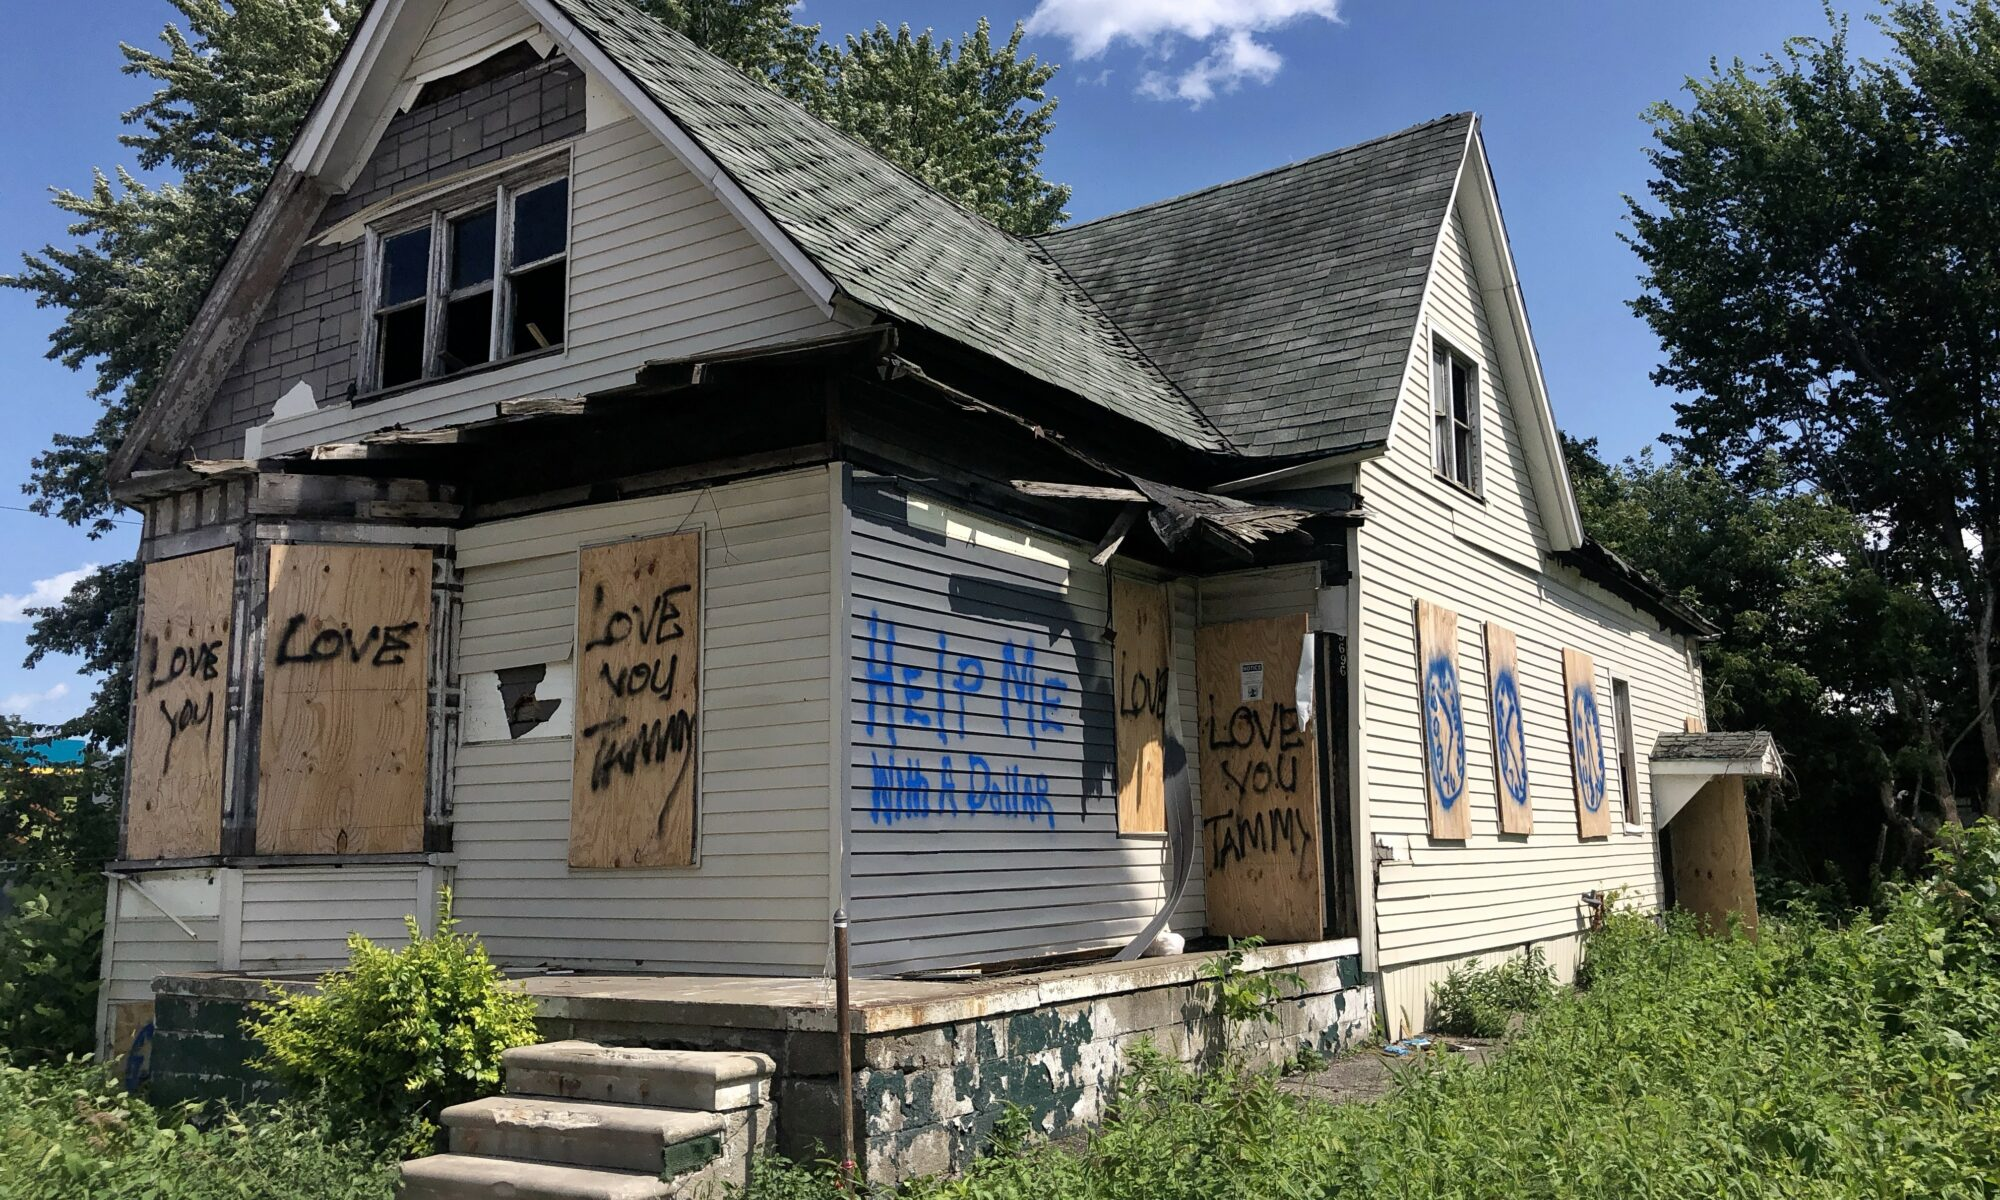 abandoned houses for free, abandoned houses for free 2020, abandoned houses for free in texas, abandoned houses for free 2020 near me, abandoned houses for free california, abandoned houses for free 2019 uk, abandoned houses for free near me, abandoned houses for free 2020 uk, abandoned houses for free scotland, abandoned houses for free in south africa, japan is giving away abandoned houses for free,